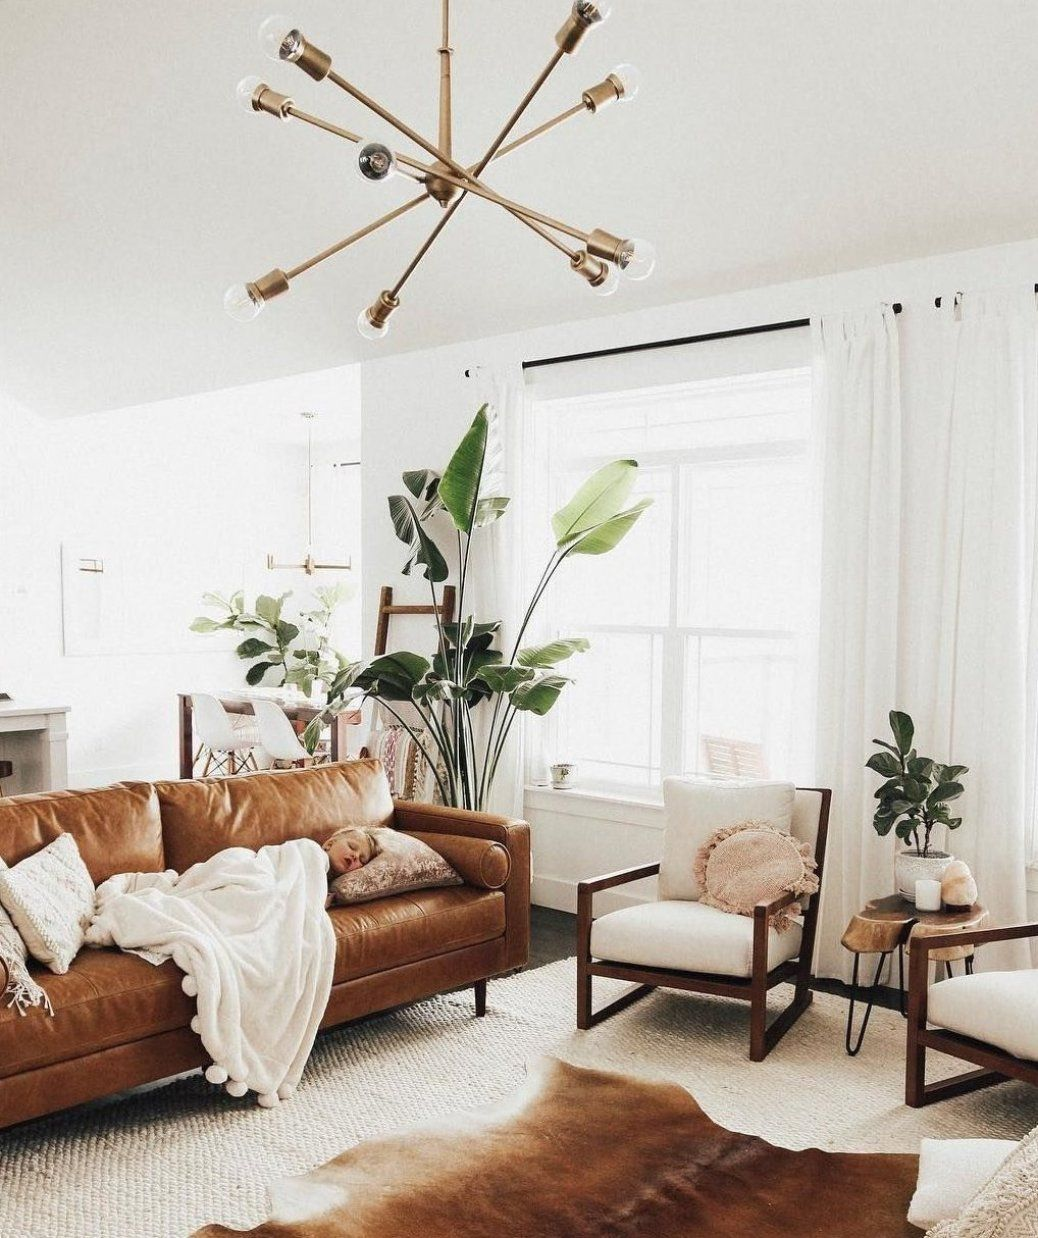 Lighting And Furniture From The Best Uk Interior Designers Visit Us For Interior Design In 2020 Western Living Room Decor Western Living Rooms Room Inspiration